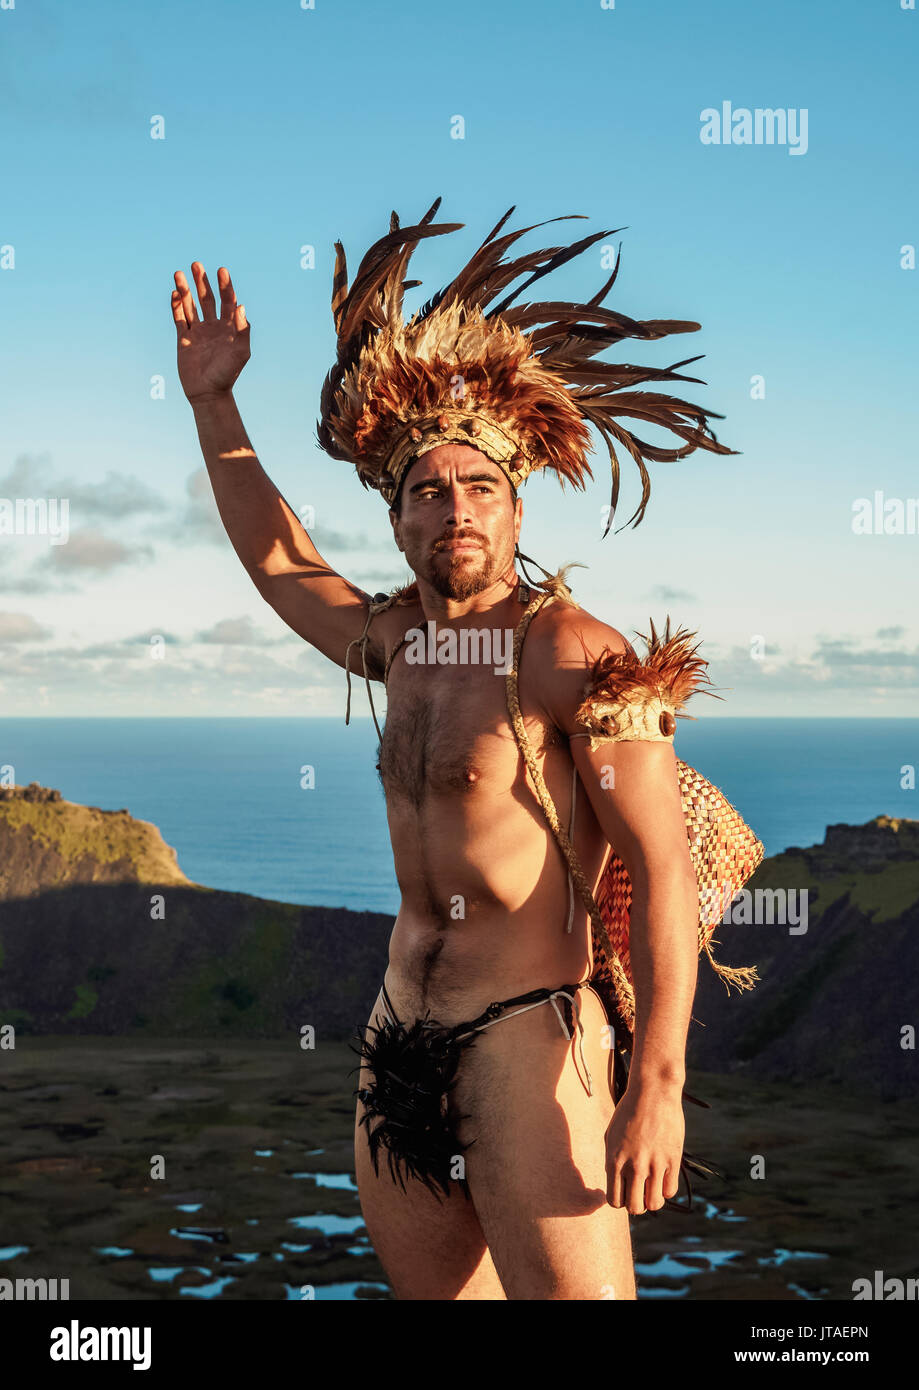 Native Rapa Nui man in tradititional costume on the rim of the Rano Kau Volcano, Easter Island, Chile - Stock Image